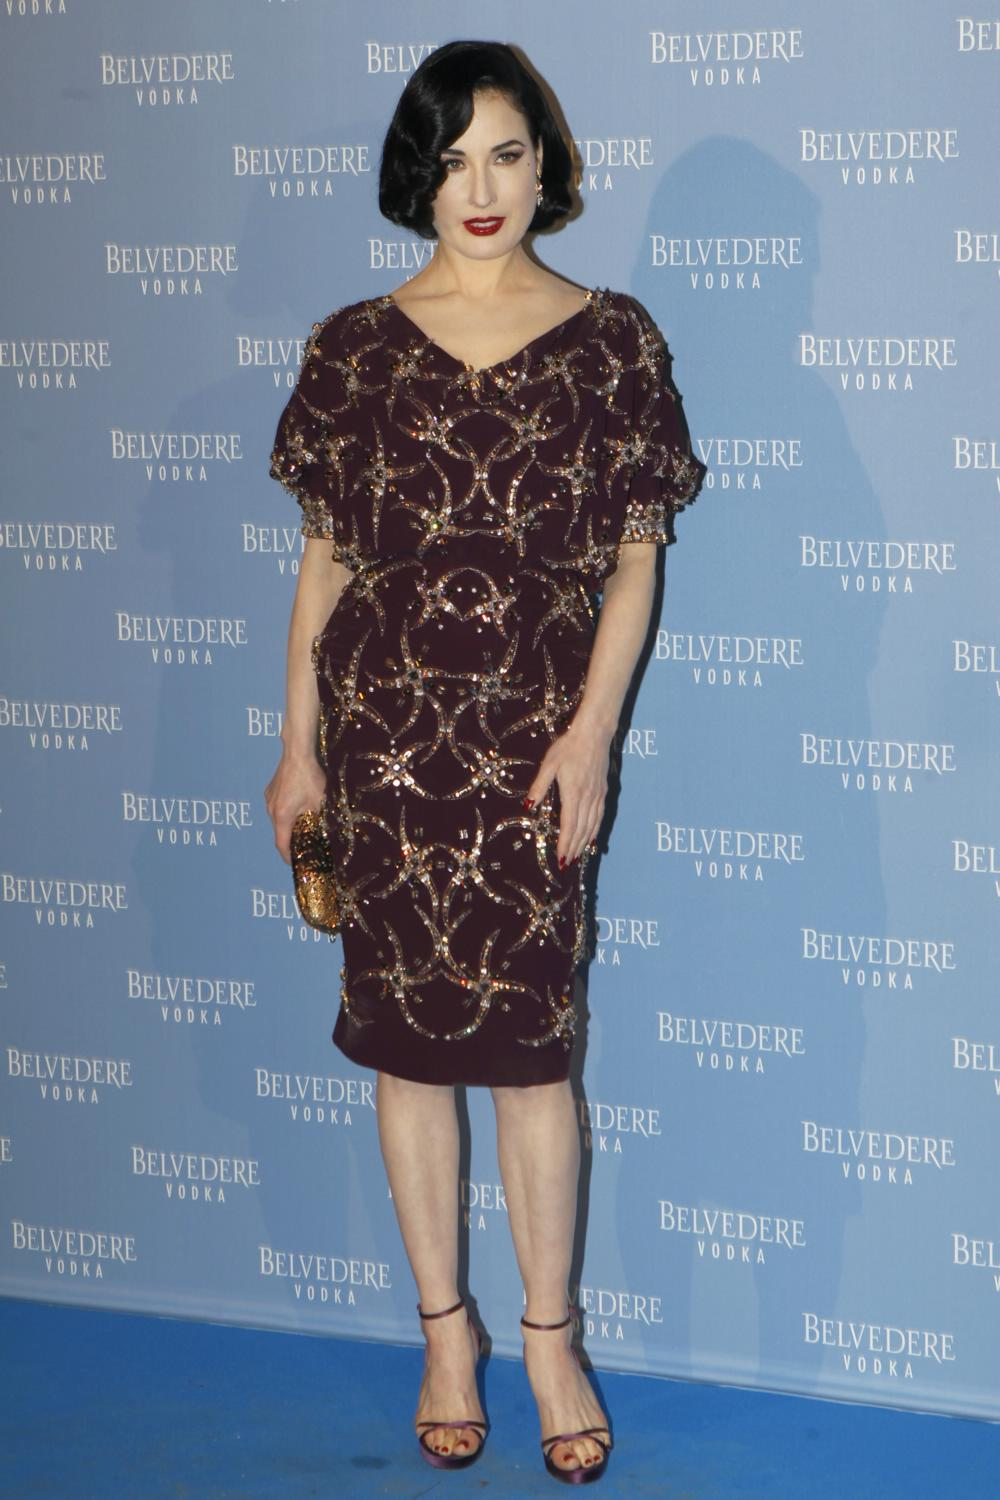 Dita Von Teese Attends Belvedere Vodka Event-1